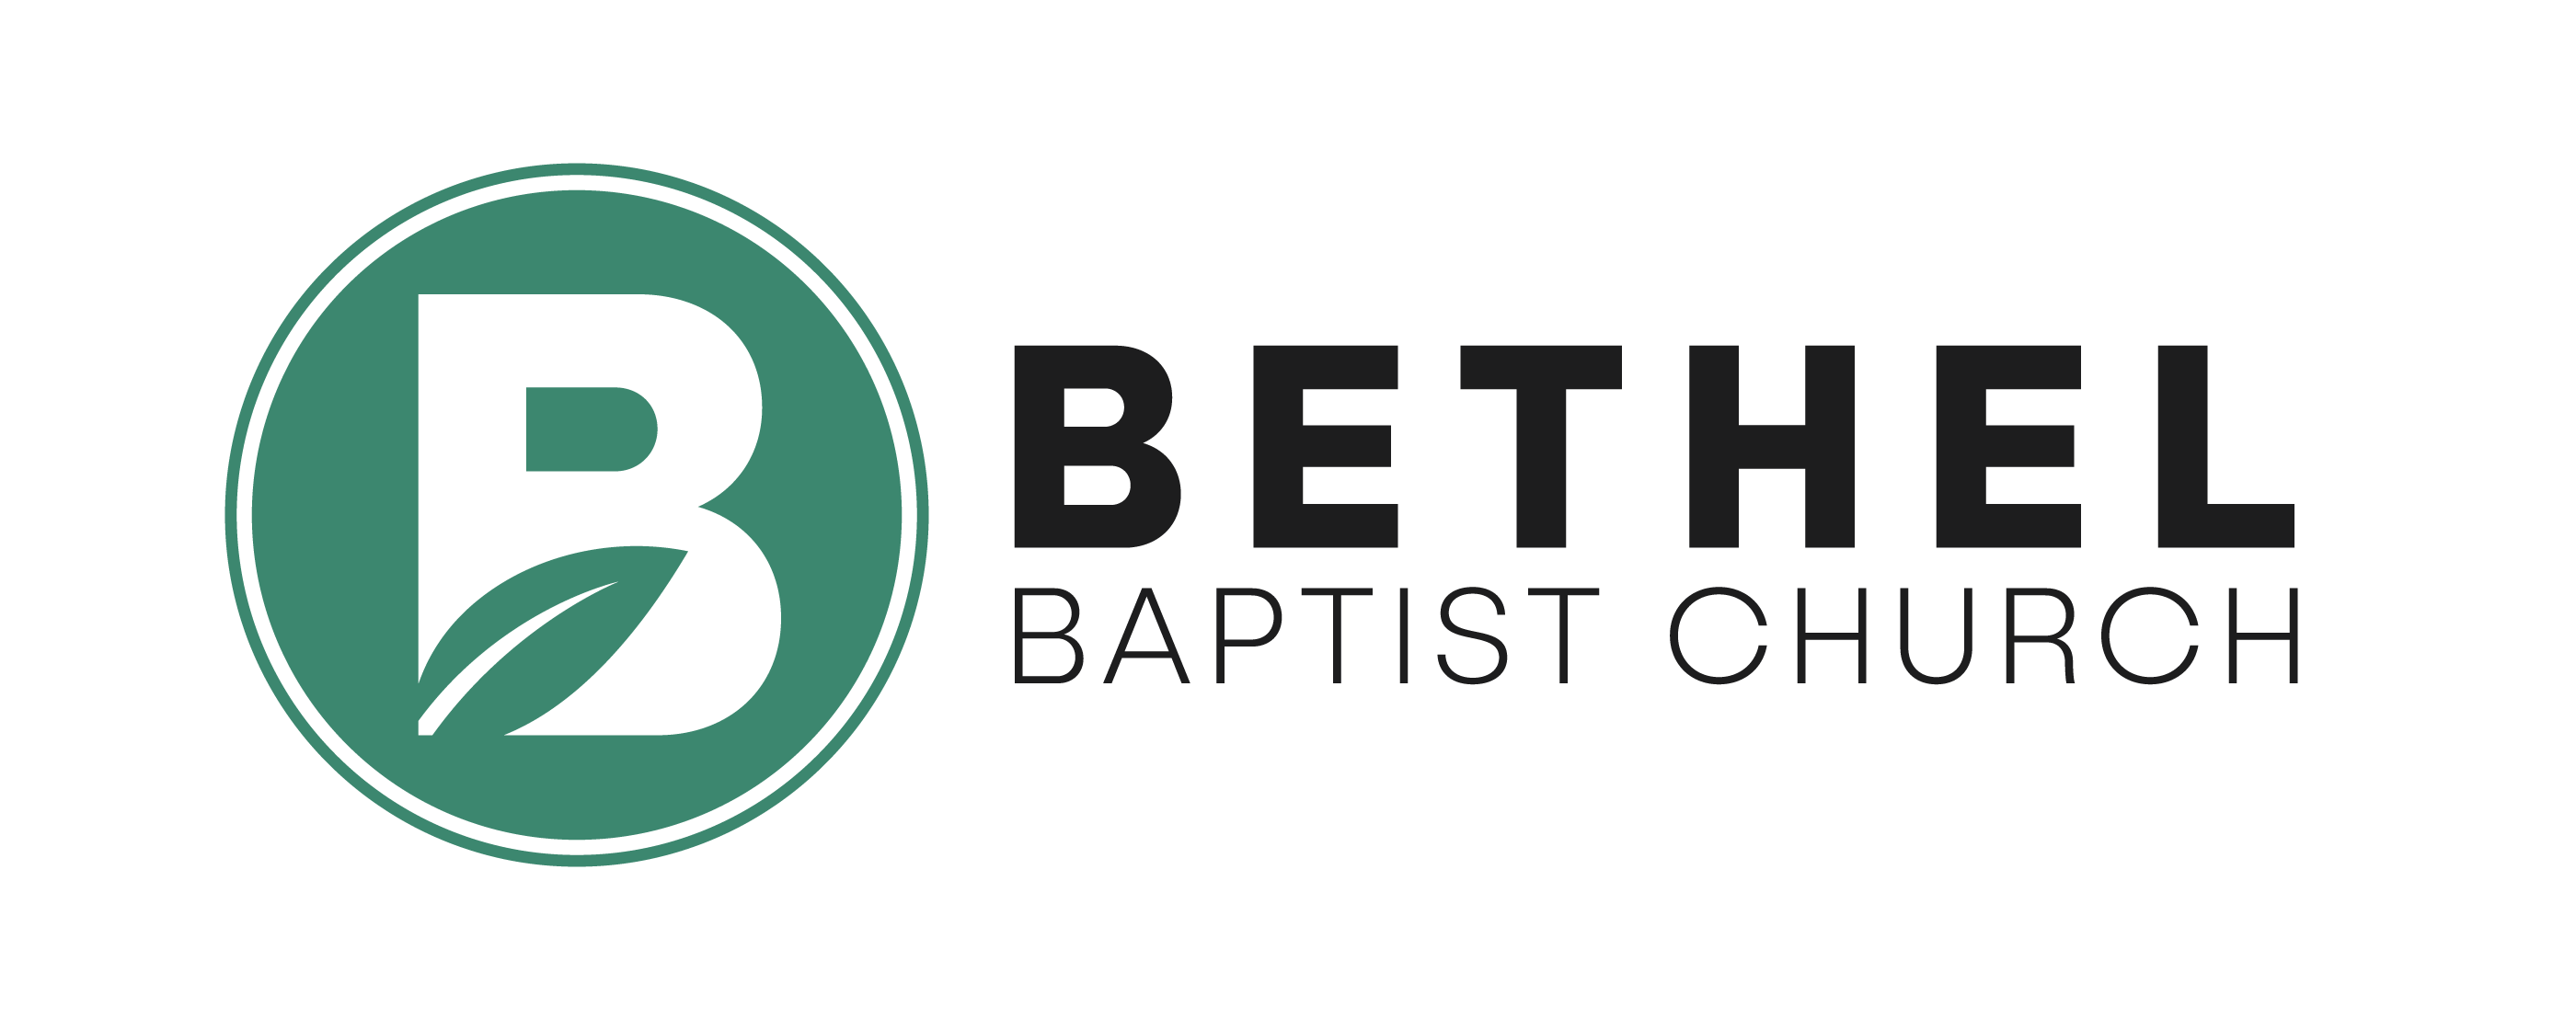 Bethel Baptist Church Footer Logo